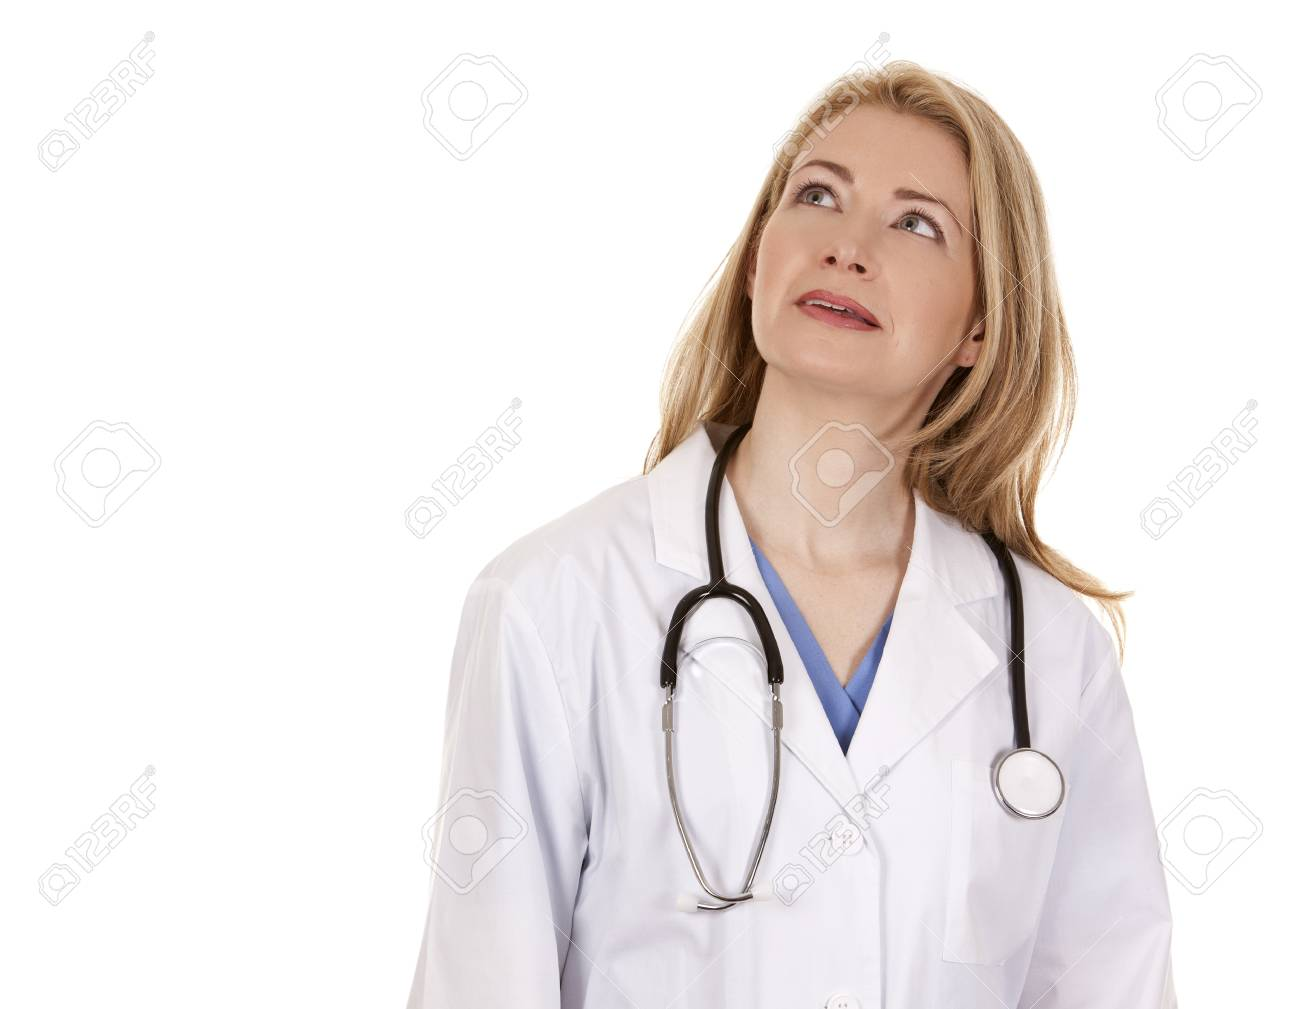 blond female doctor posing on light grey background Stock Photo - 18843540